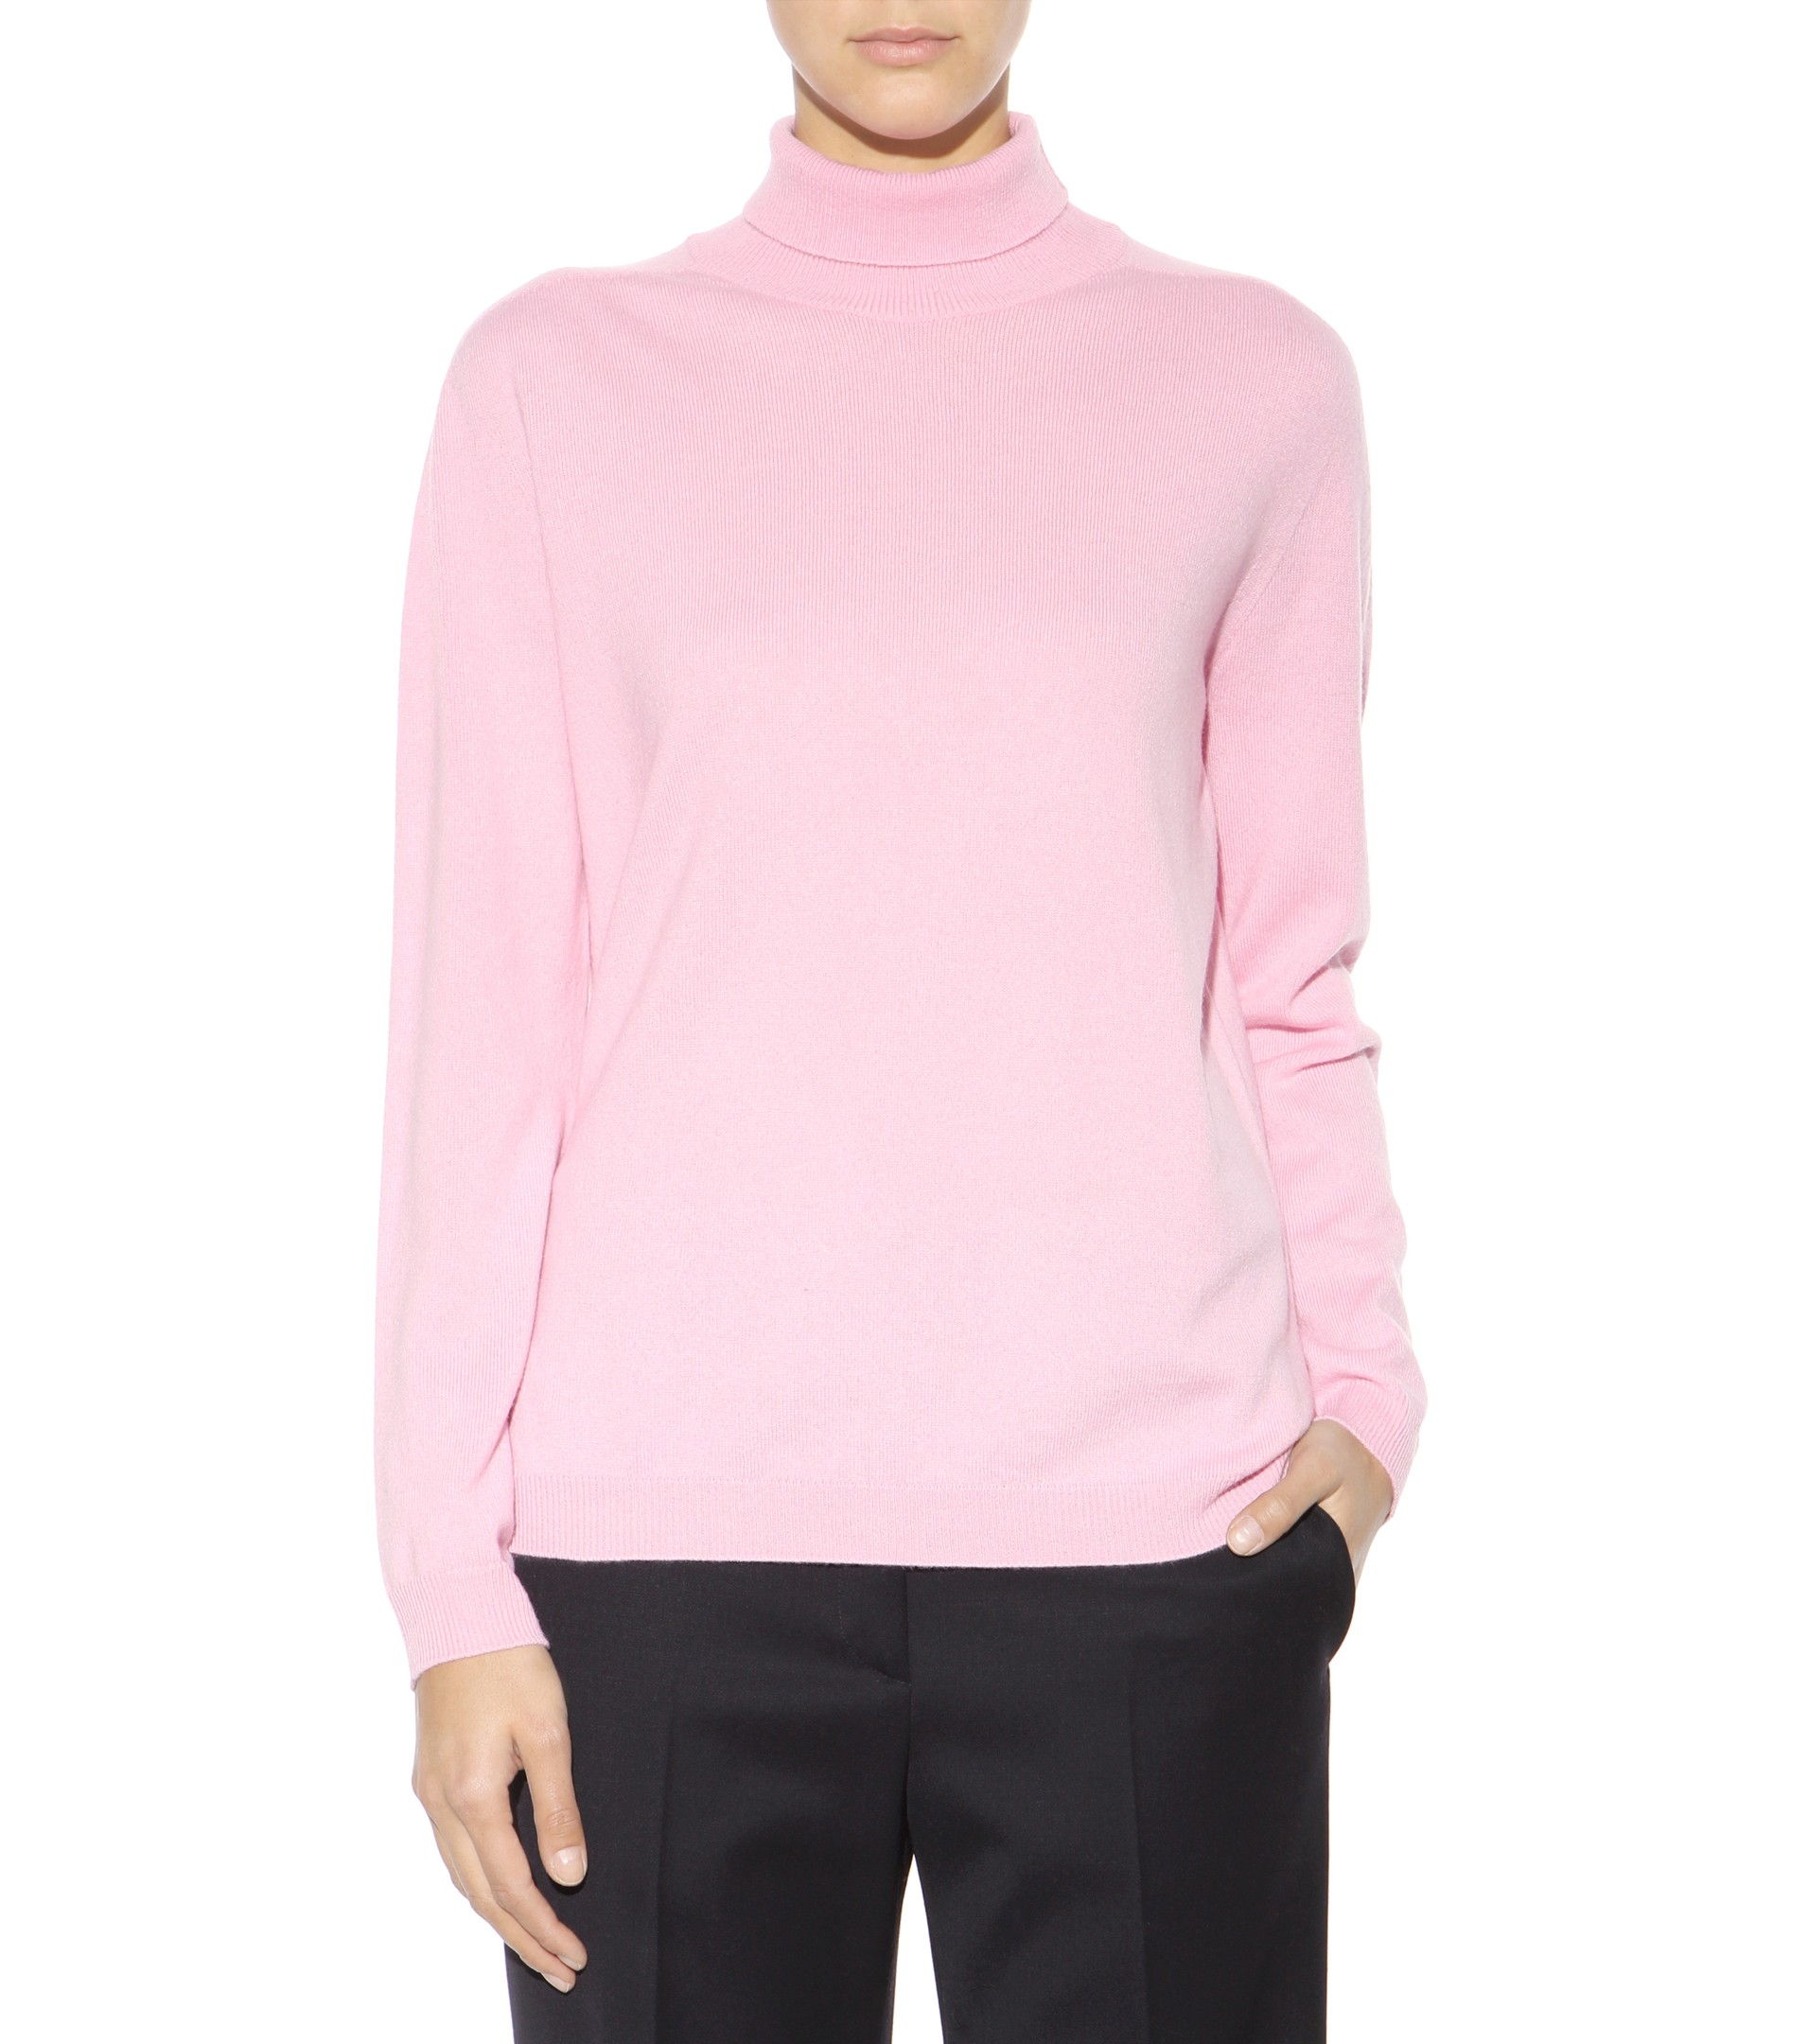 Jil Sander Pink Cashmere Sweater - Cardigan With Buttons